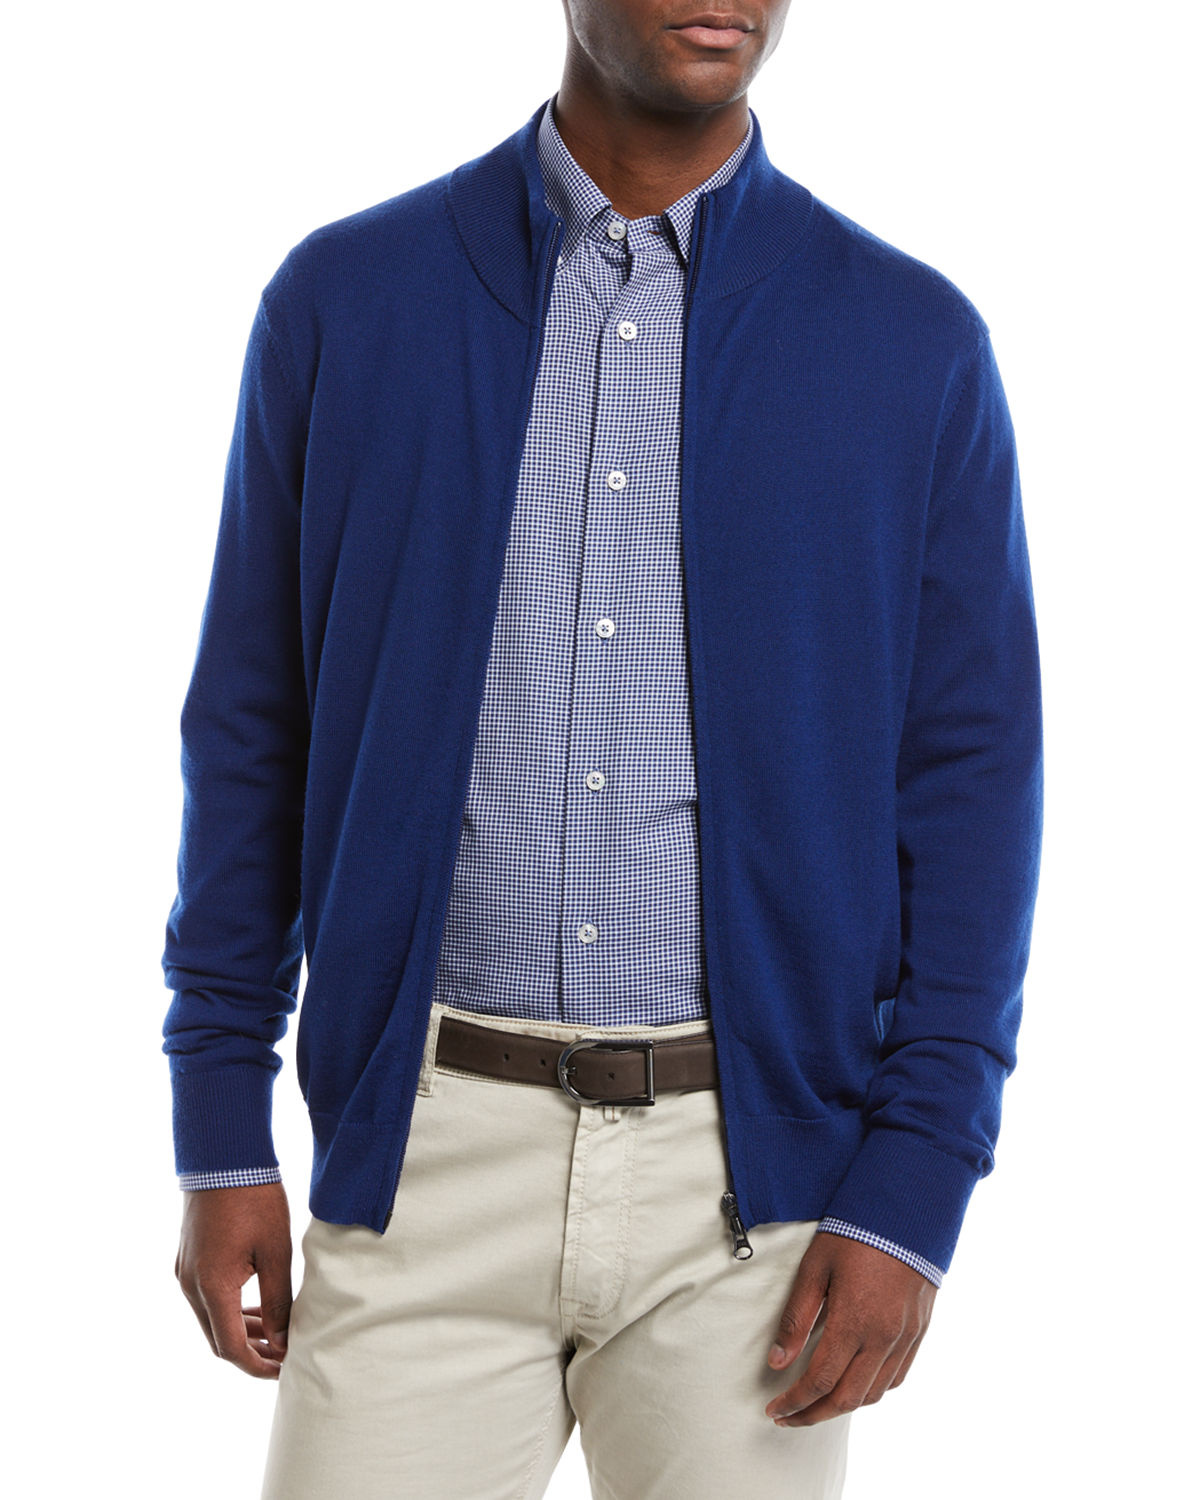 Men's Casual Merino Wool Zip-Front Cardigan Sweater